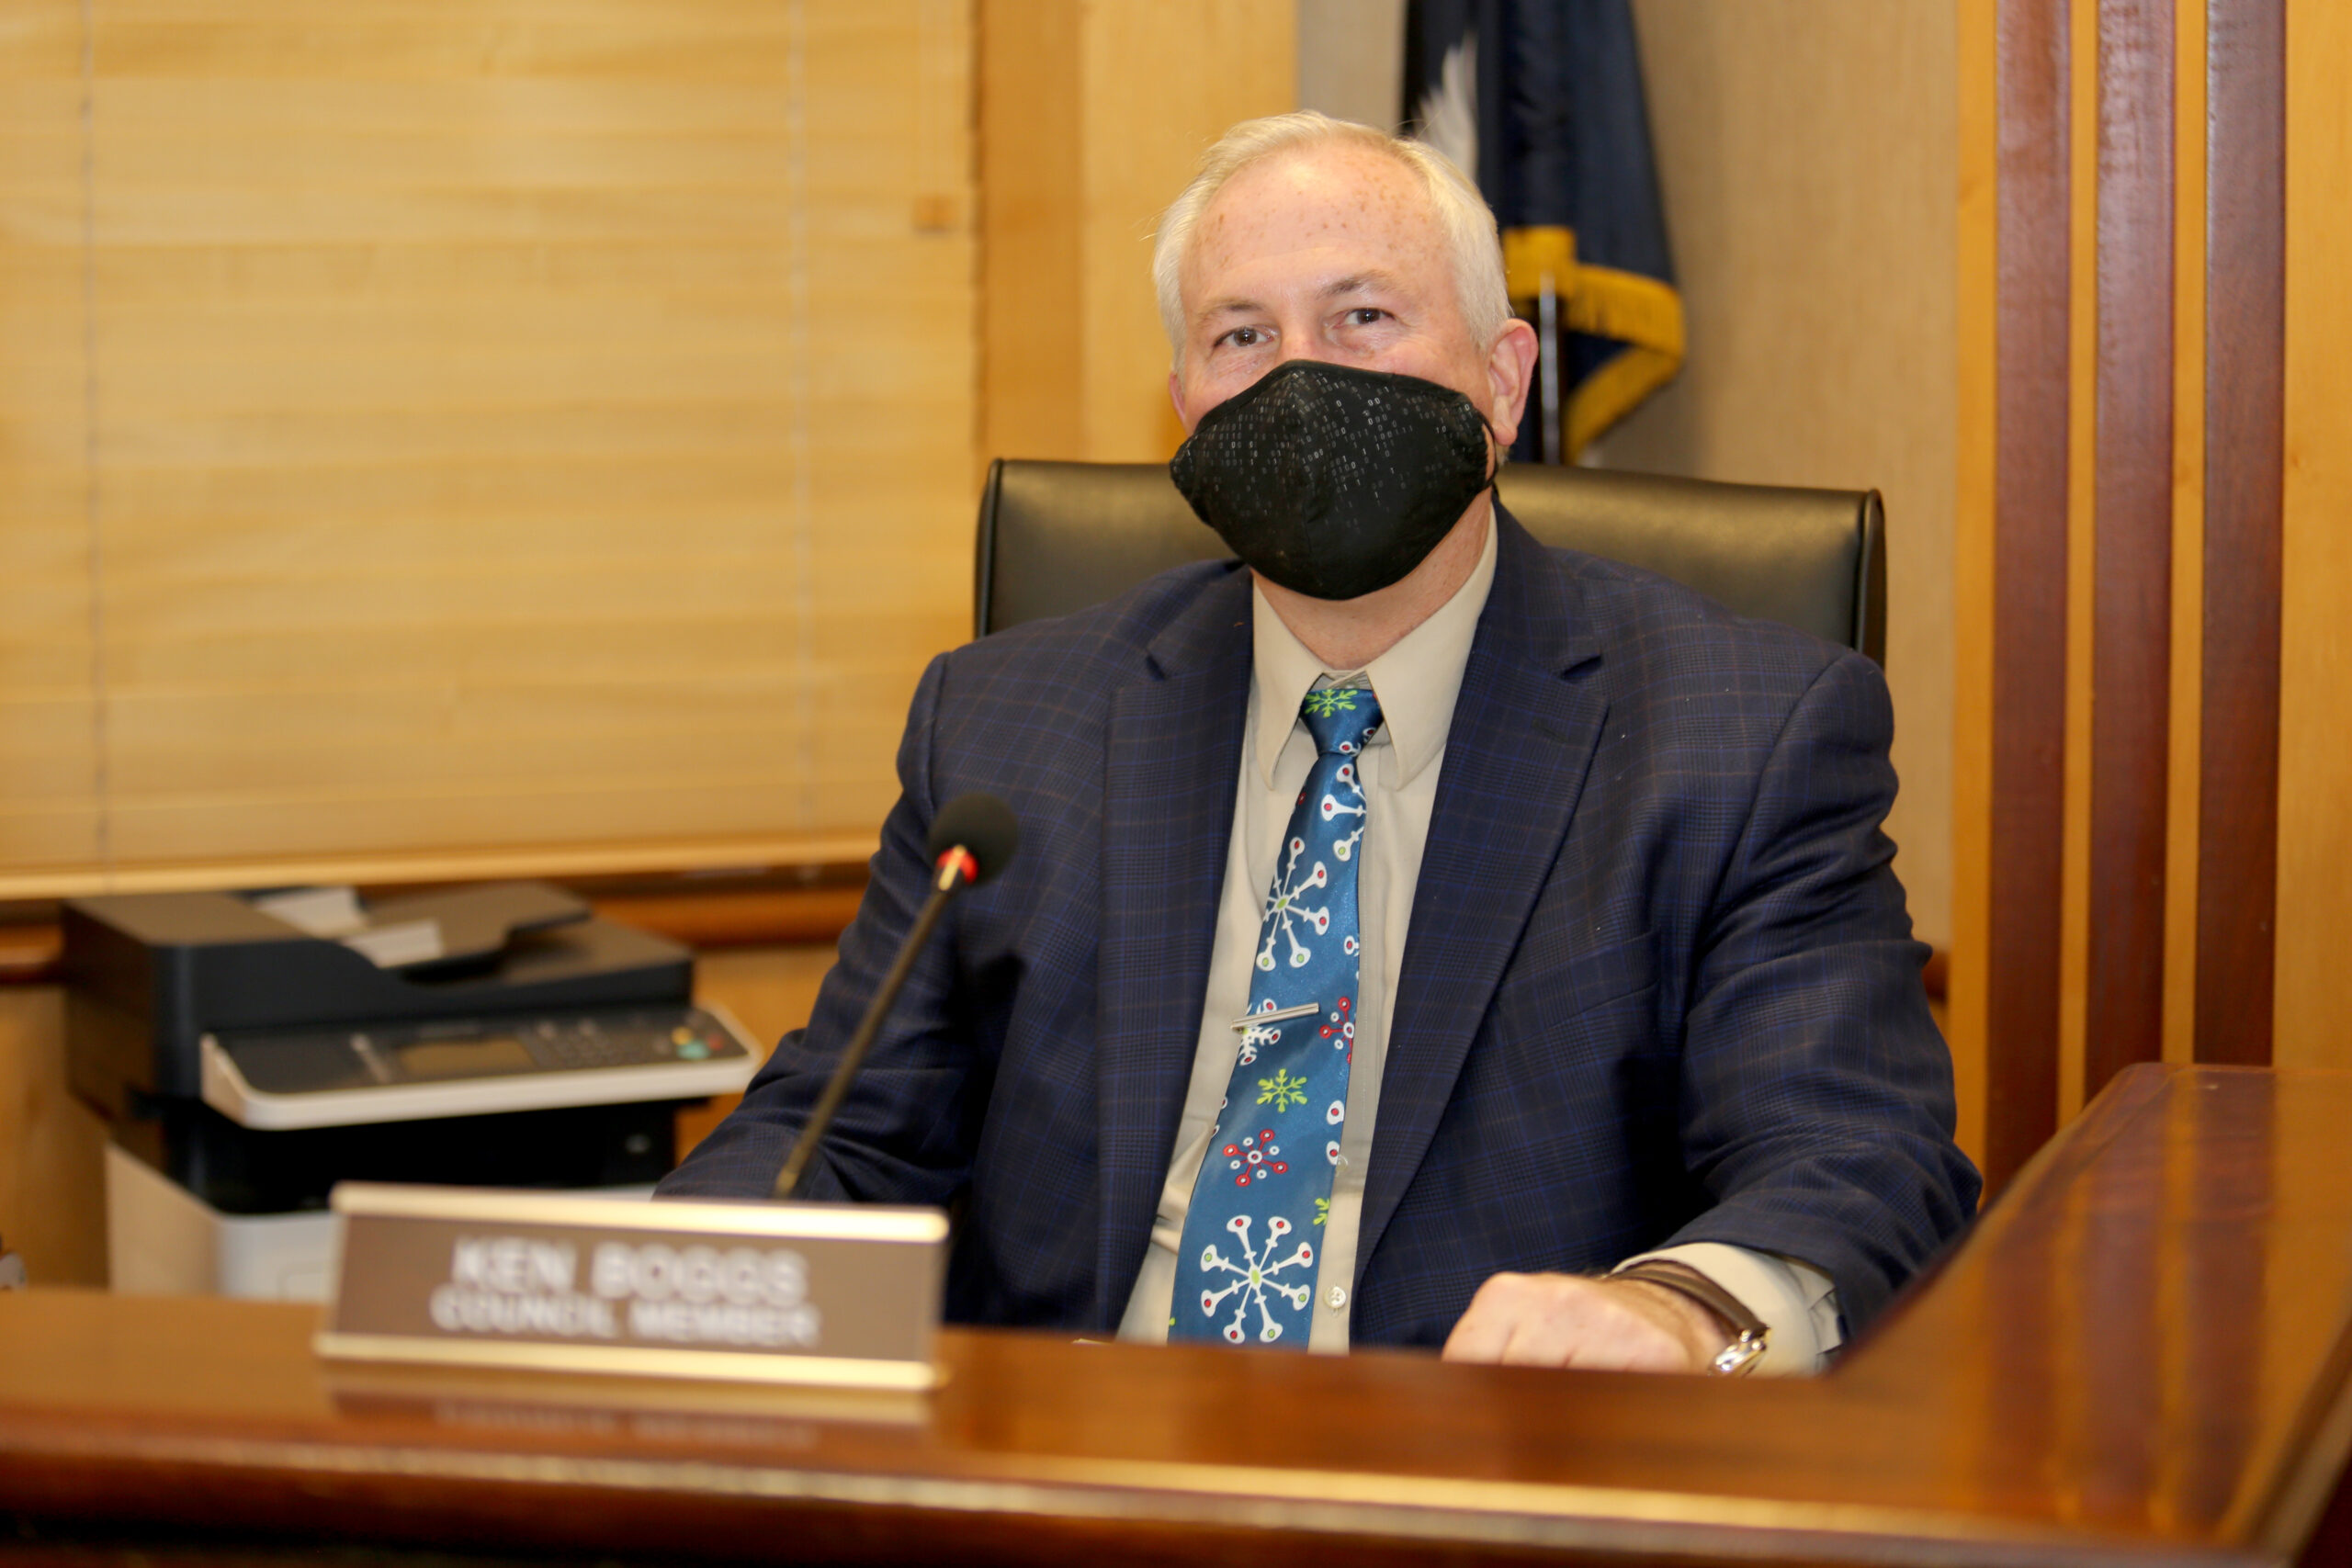 Councilman Boggs appears to be smiling from behind his mask